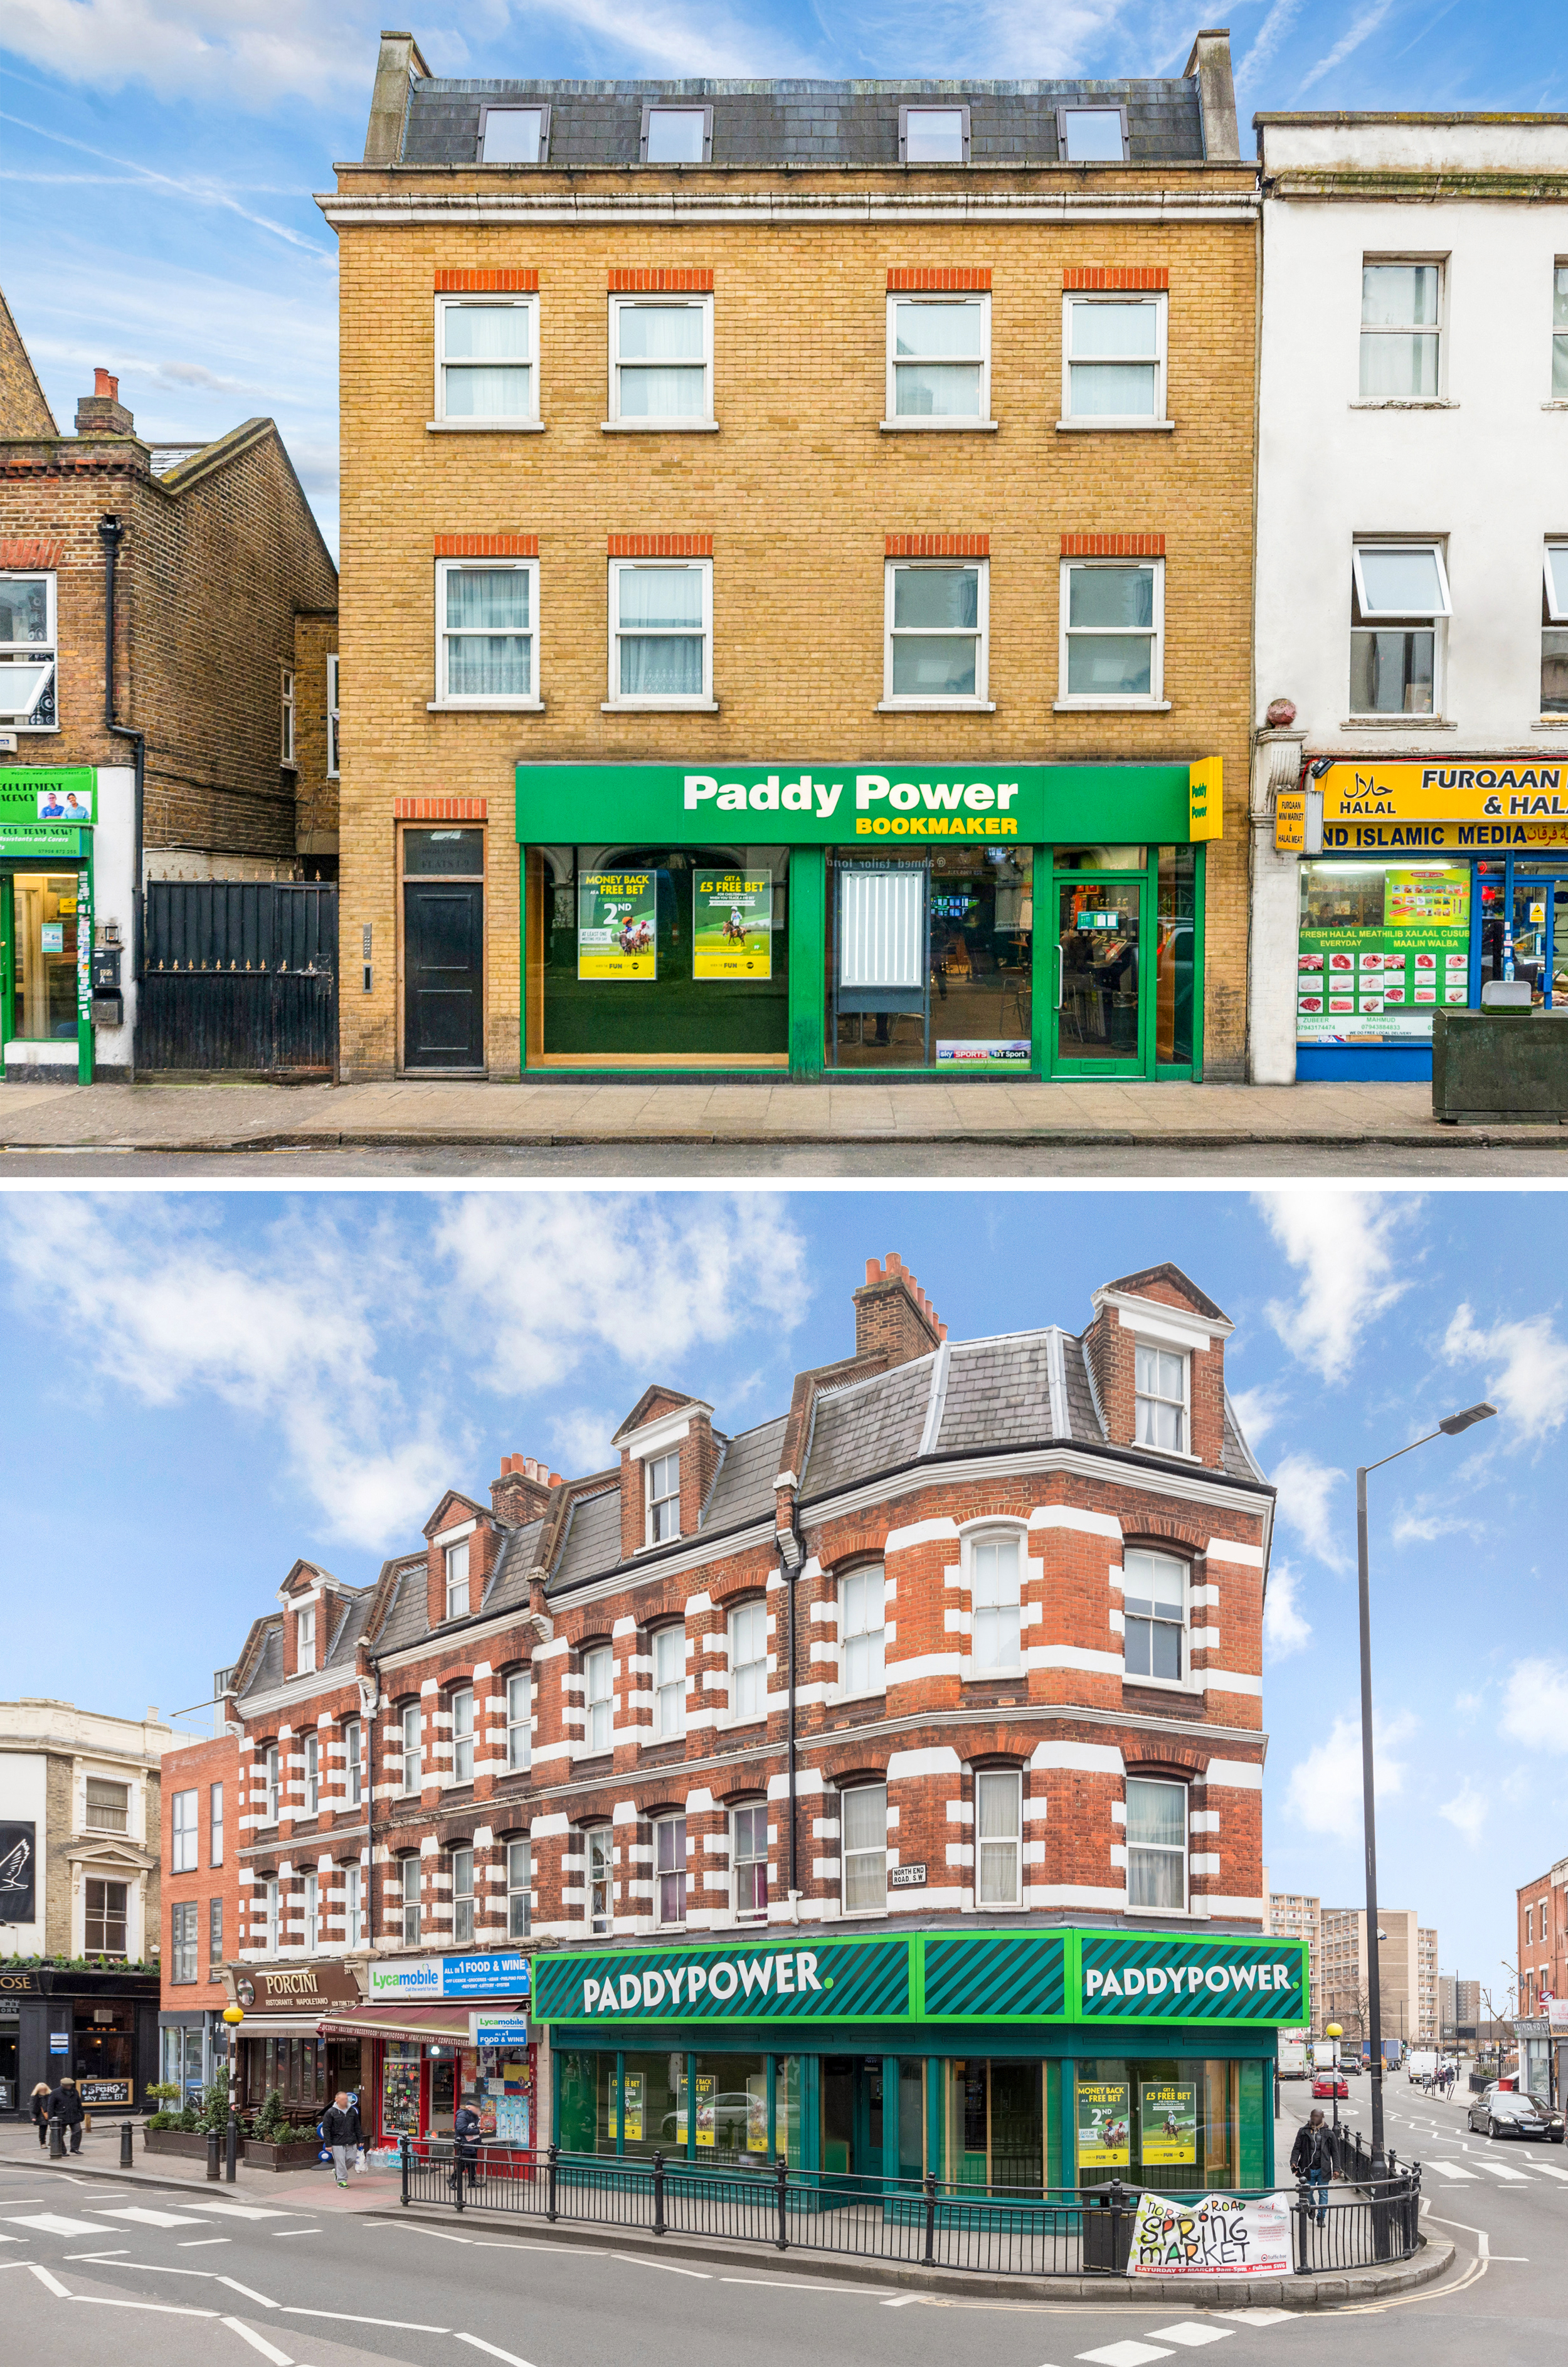 Paddy Power PLC - 2001 to 2005We acquired and redeveloped over 50 Paddy Power retail units in the UK over a four year period.